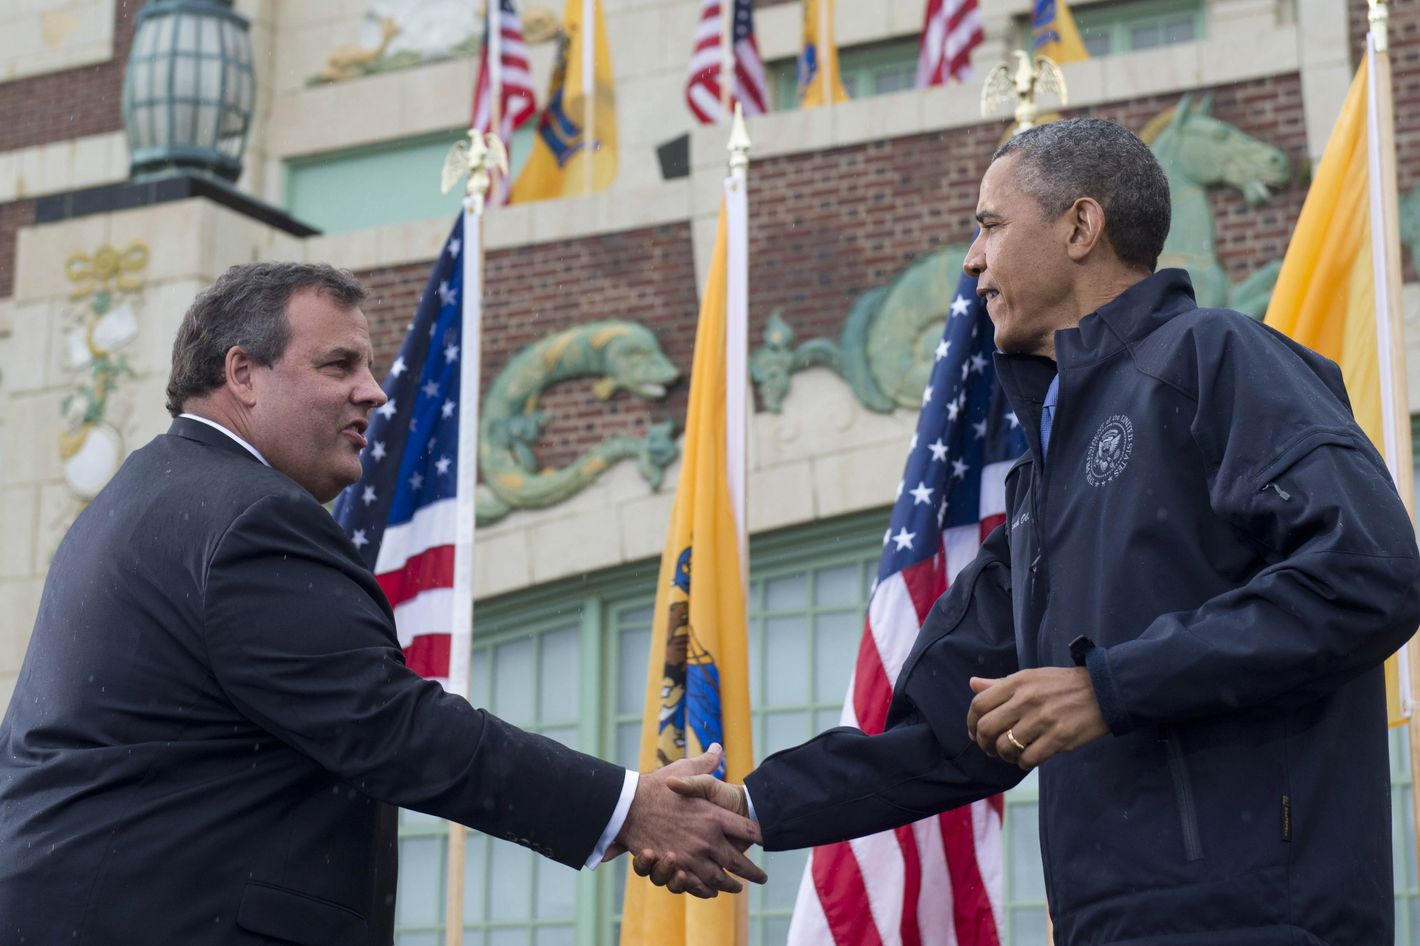 US President Barack Obama shakes hands with New Jersey Governor Chris Christie (L) before speaking about rebuilding efforts following last year's Hurricane Sandy at the Asbury Park Convention Hall in Asbury Park, New Jersey, on May 28, 2013